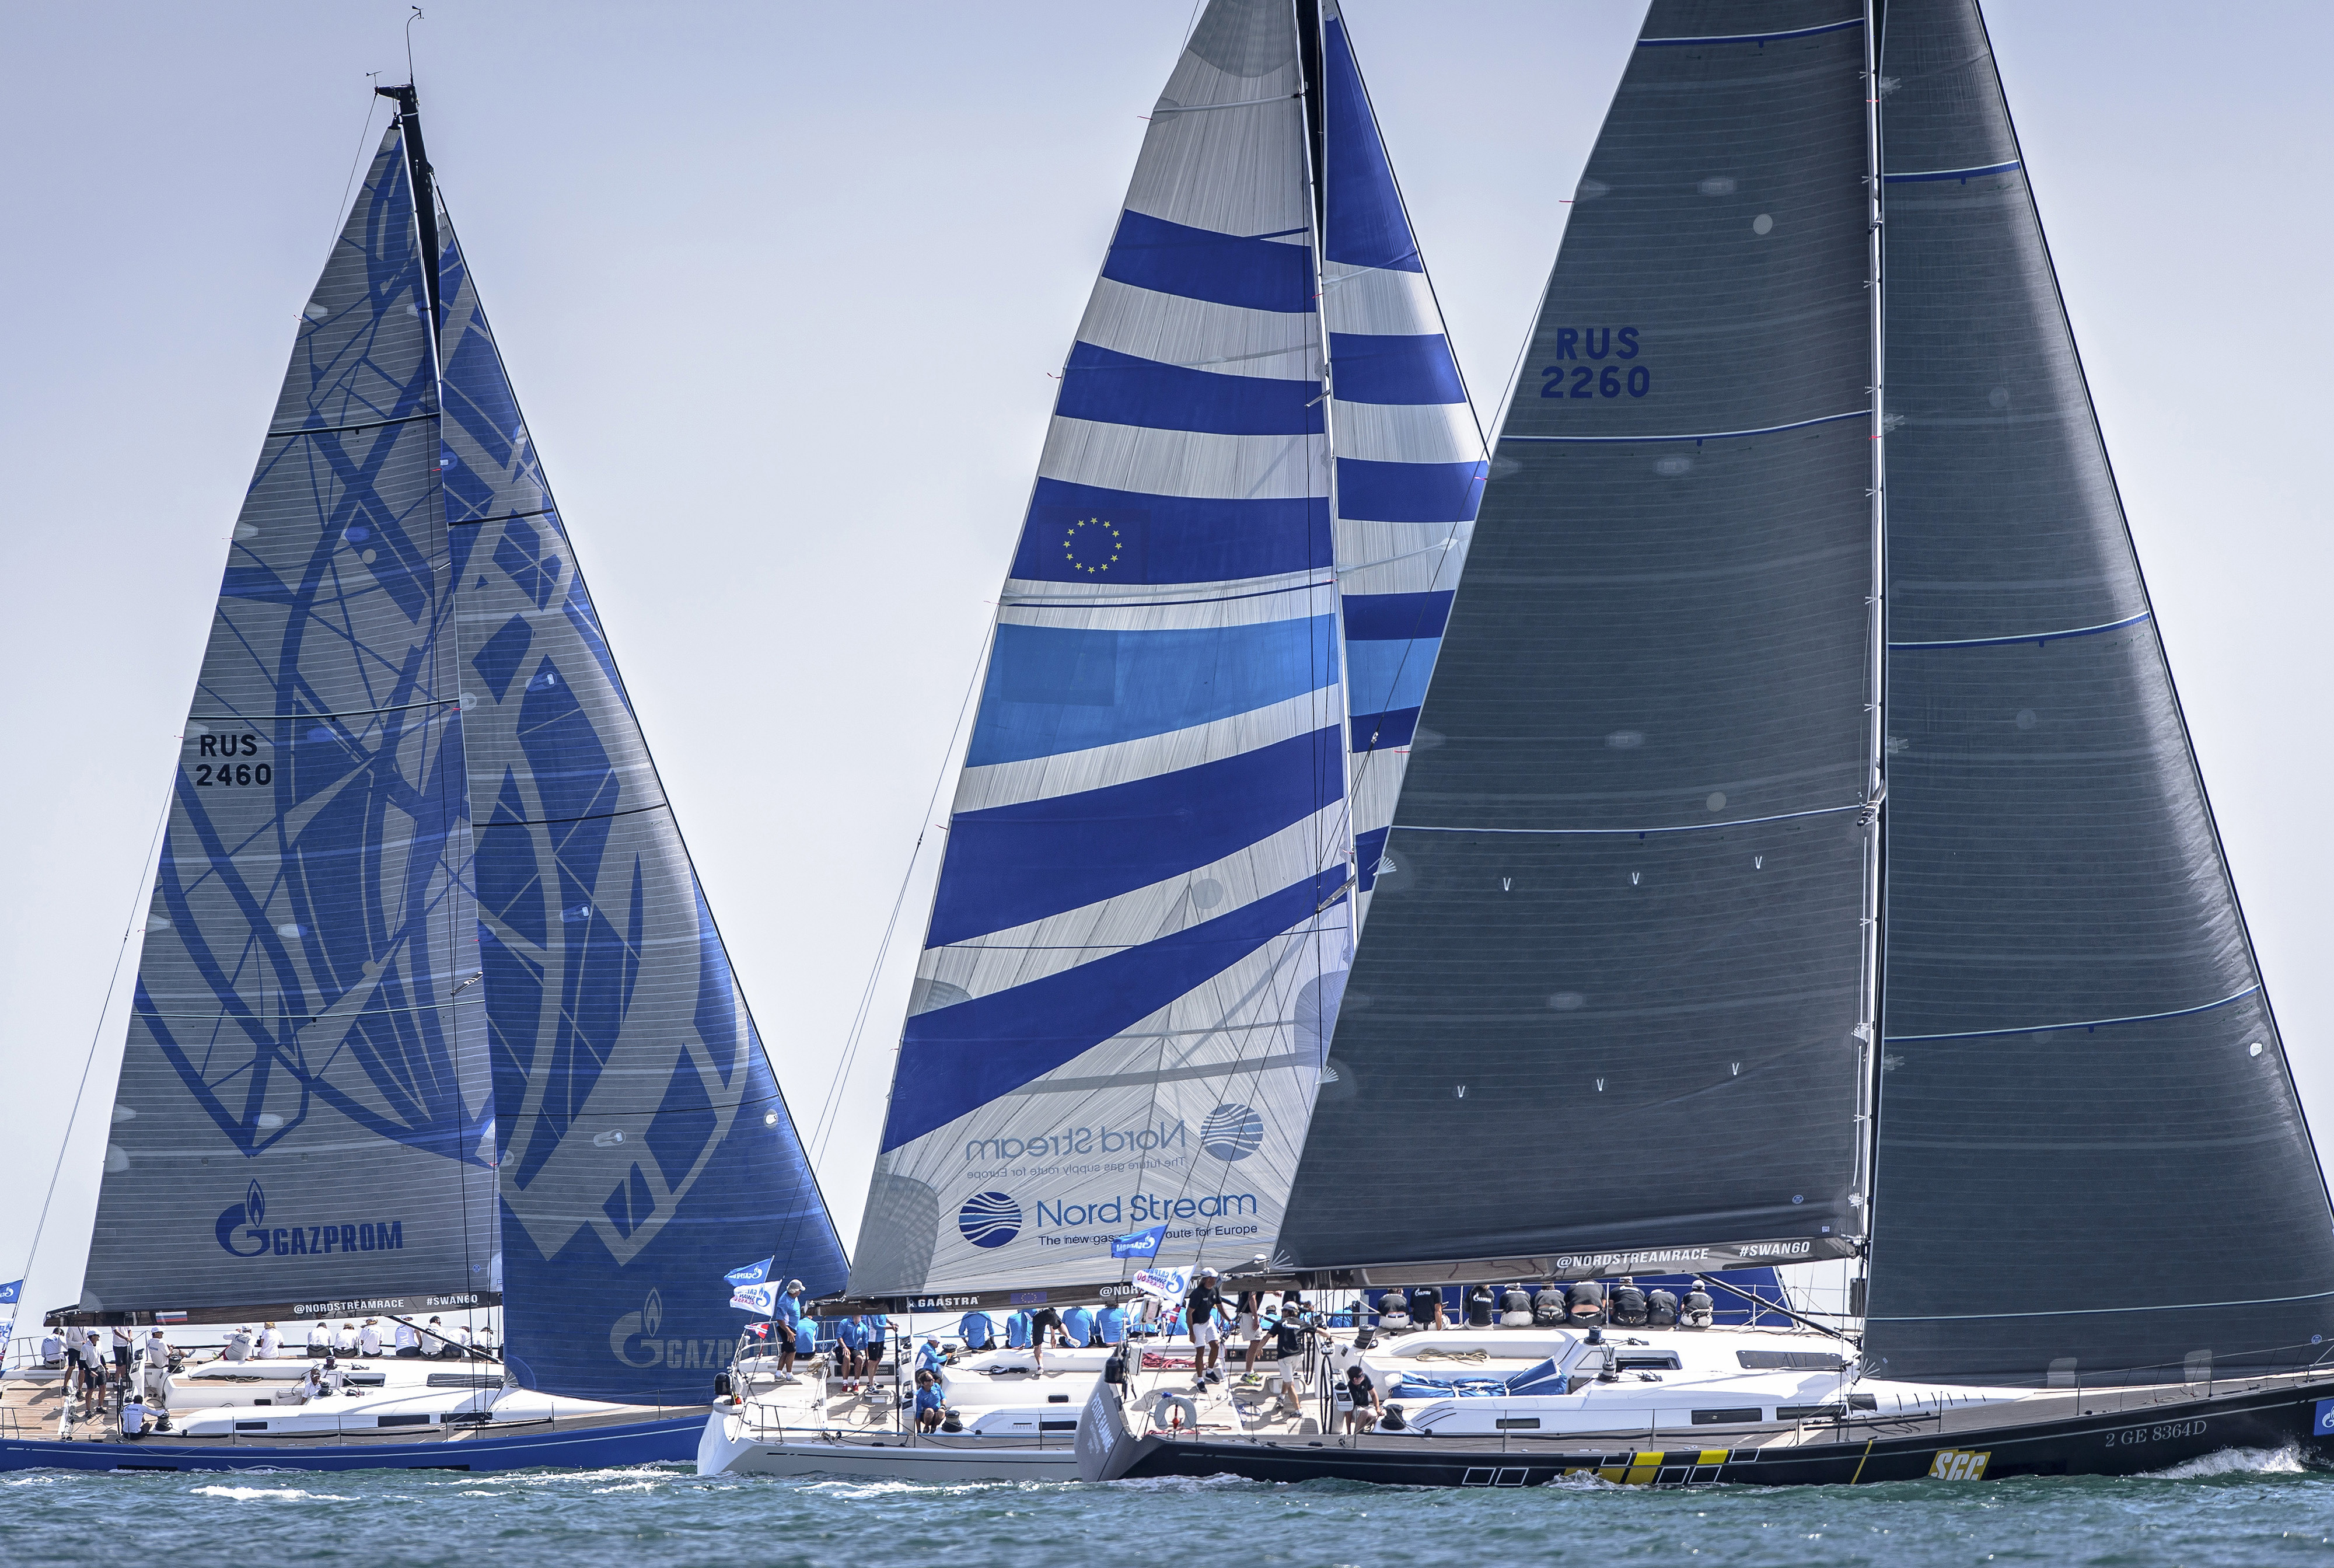 Swan 60 fleet at the GS60 World Championship 2013 ©Nautor's Swan/Kurt Arrigo